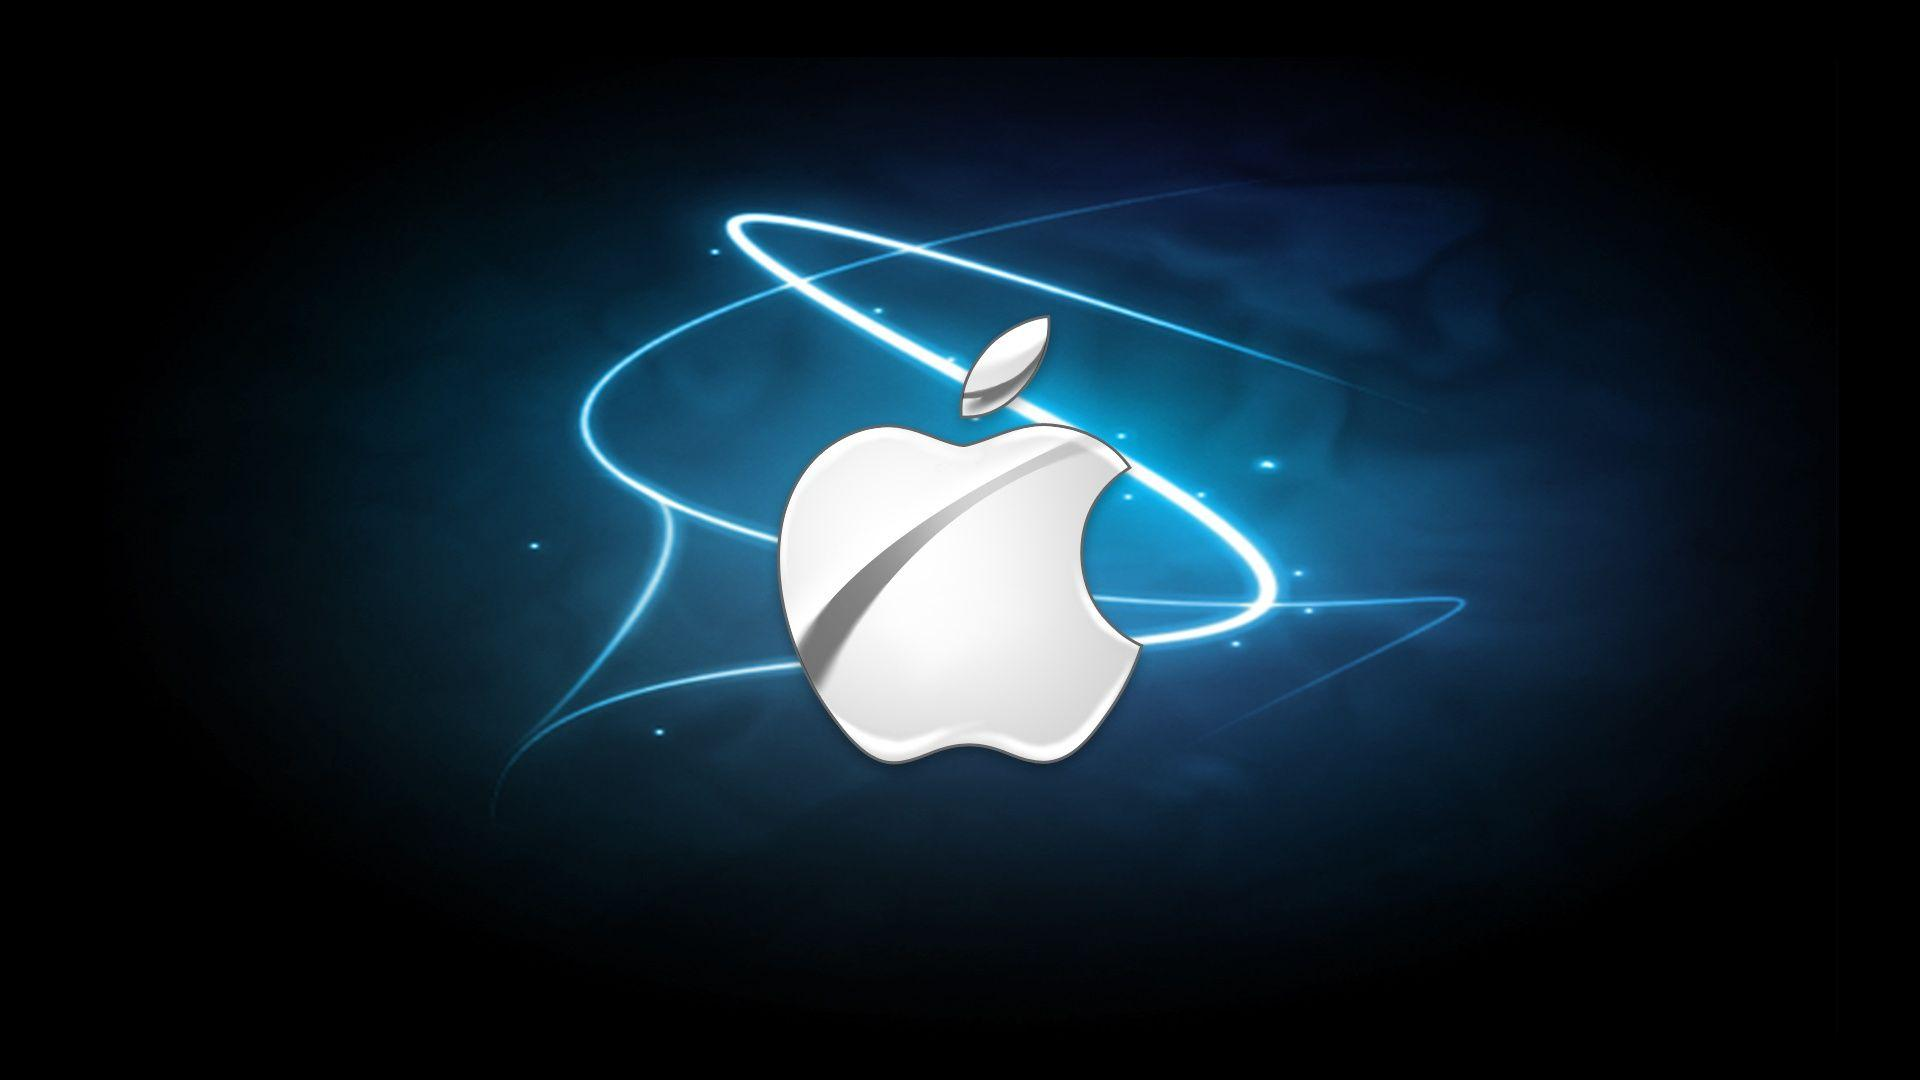 Logos For > Apple Logo Wallpapers Hd 1080p Black